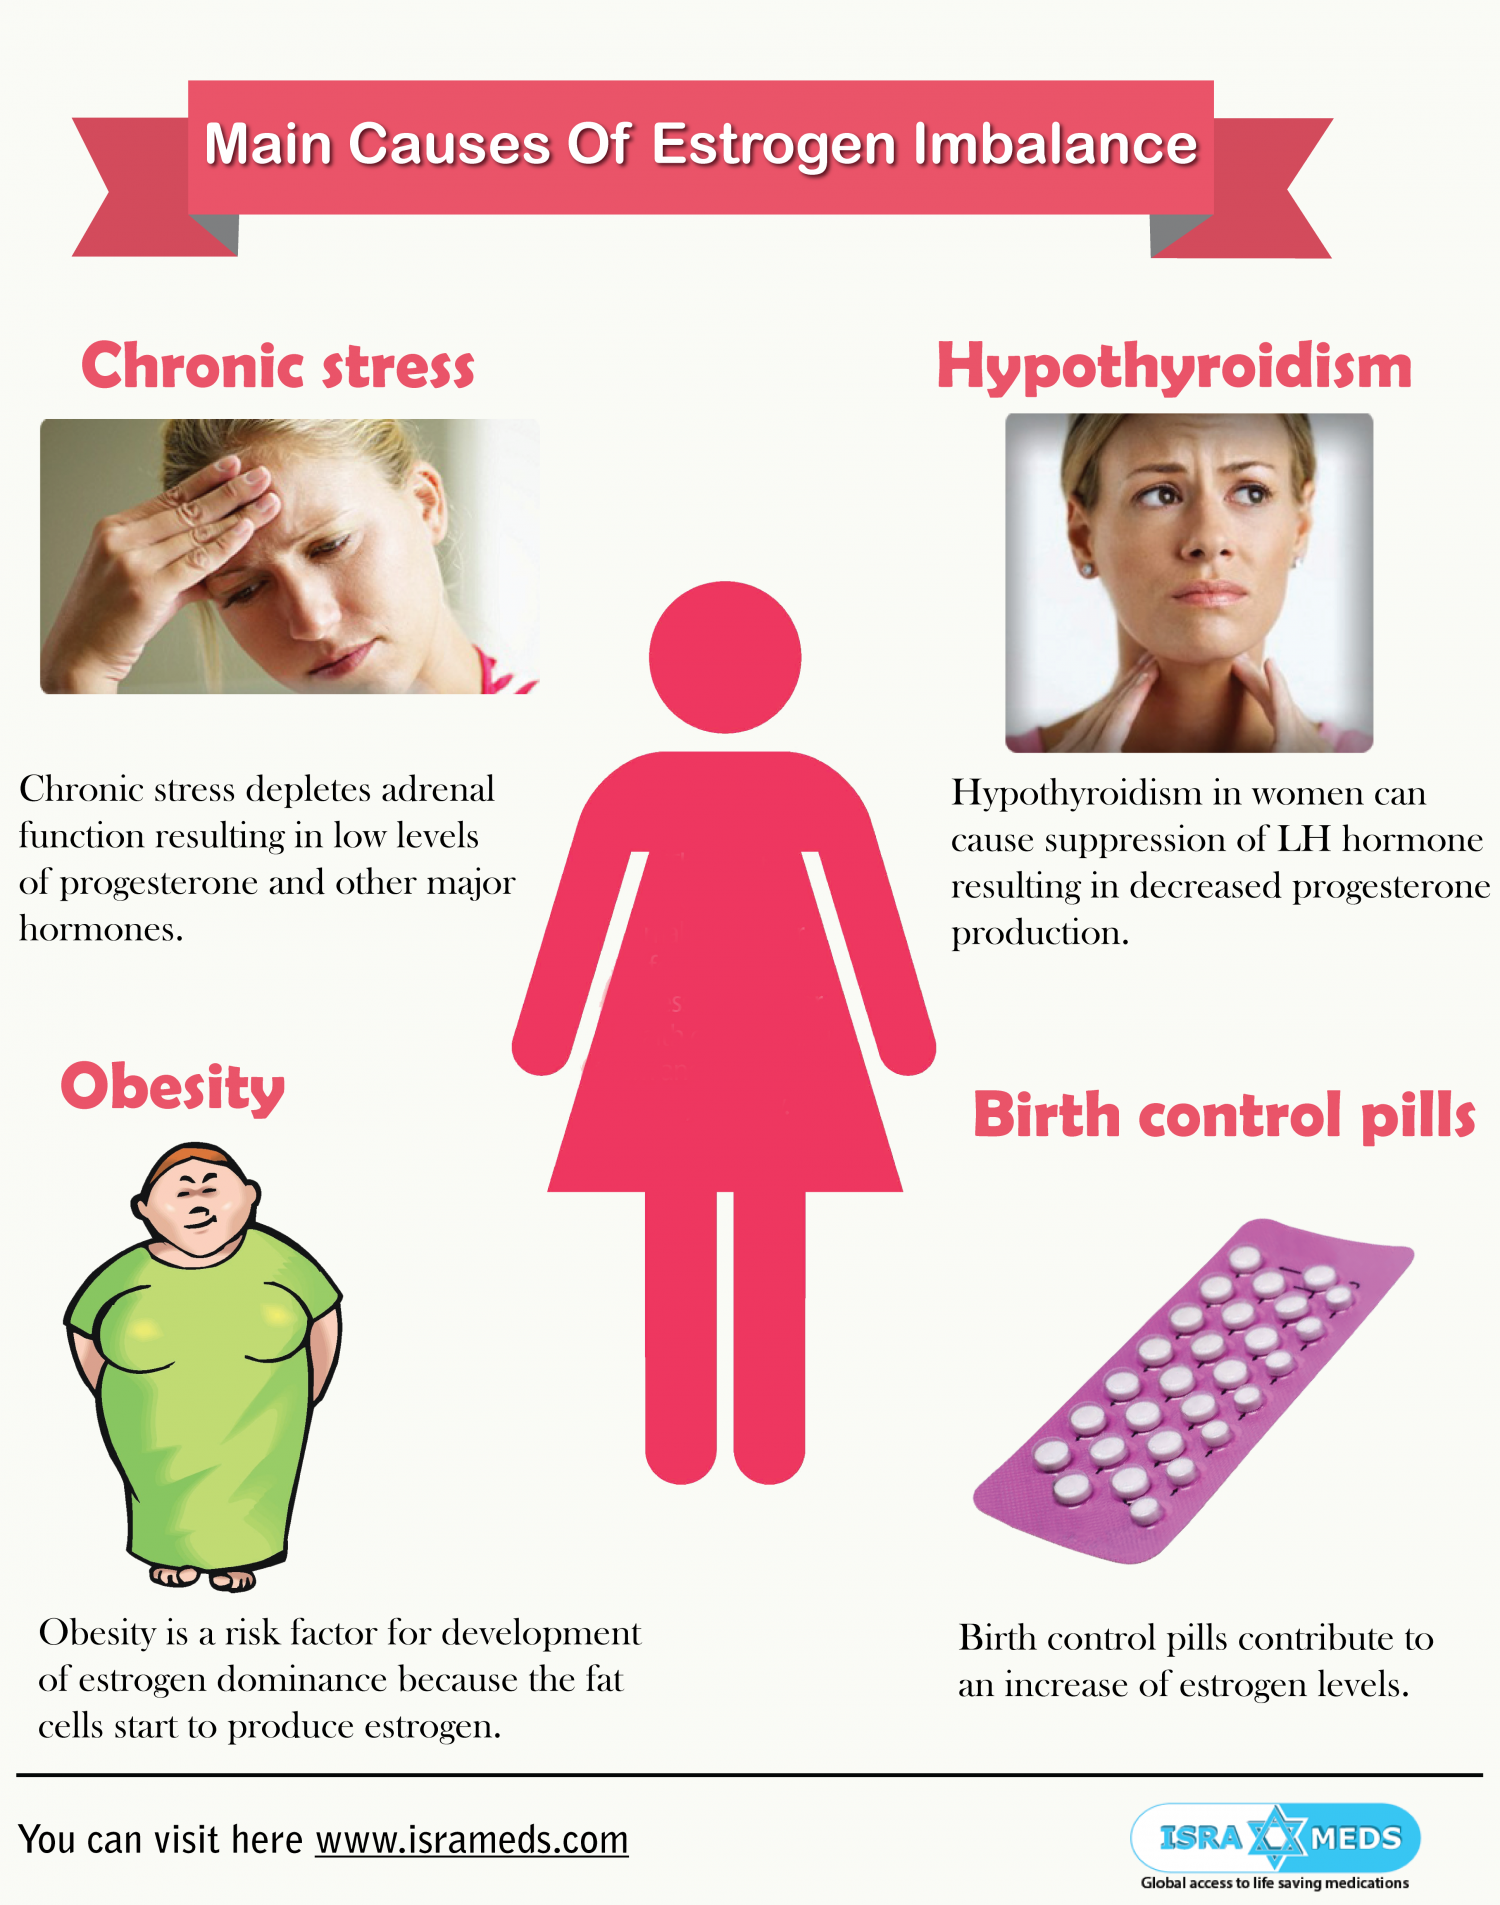 Main Causes Of Estrogen Imbalance Infographic